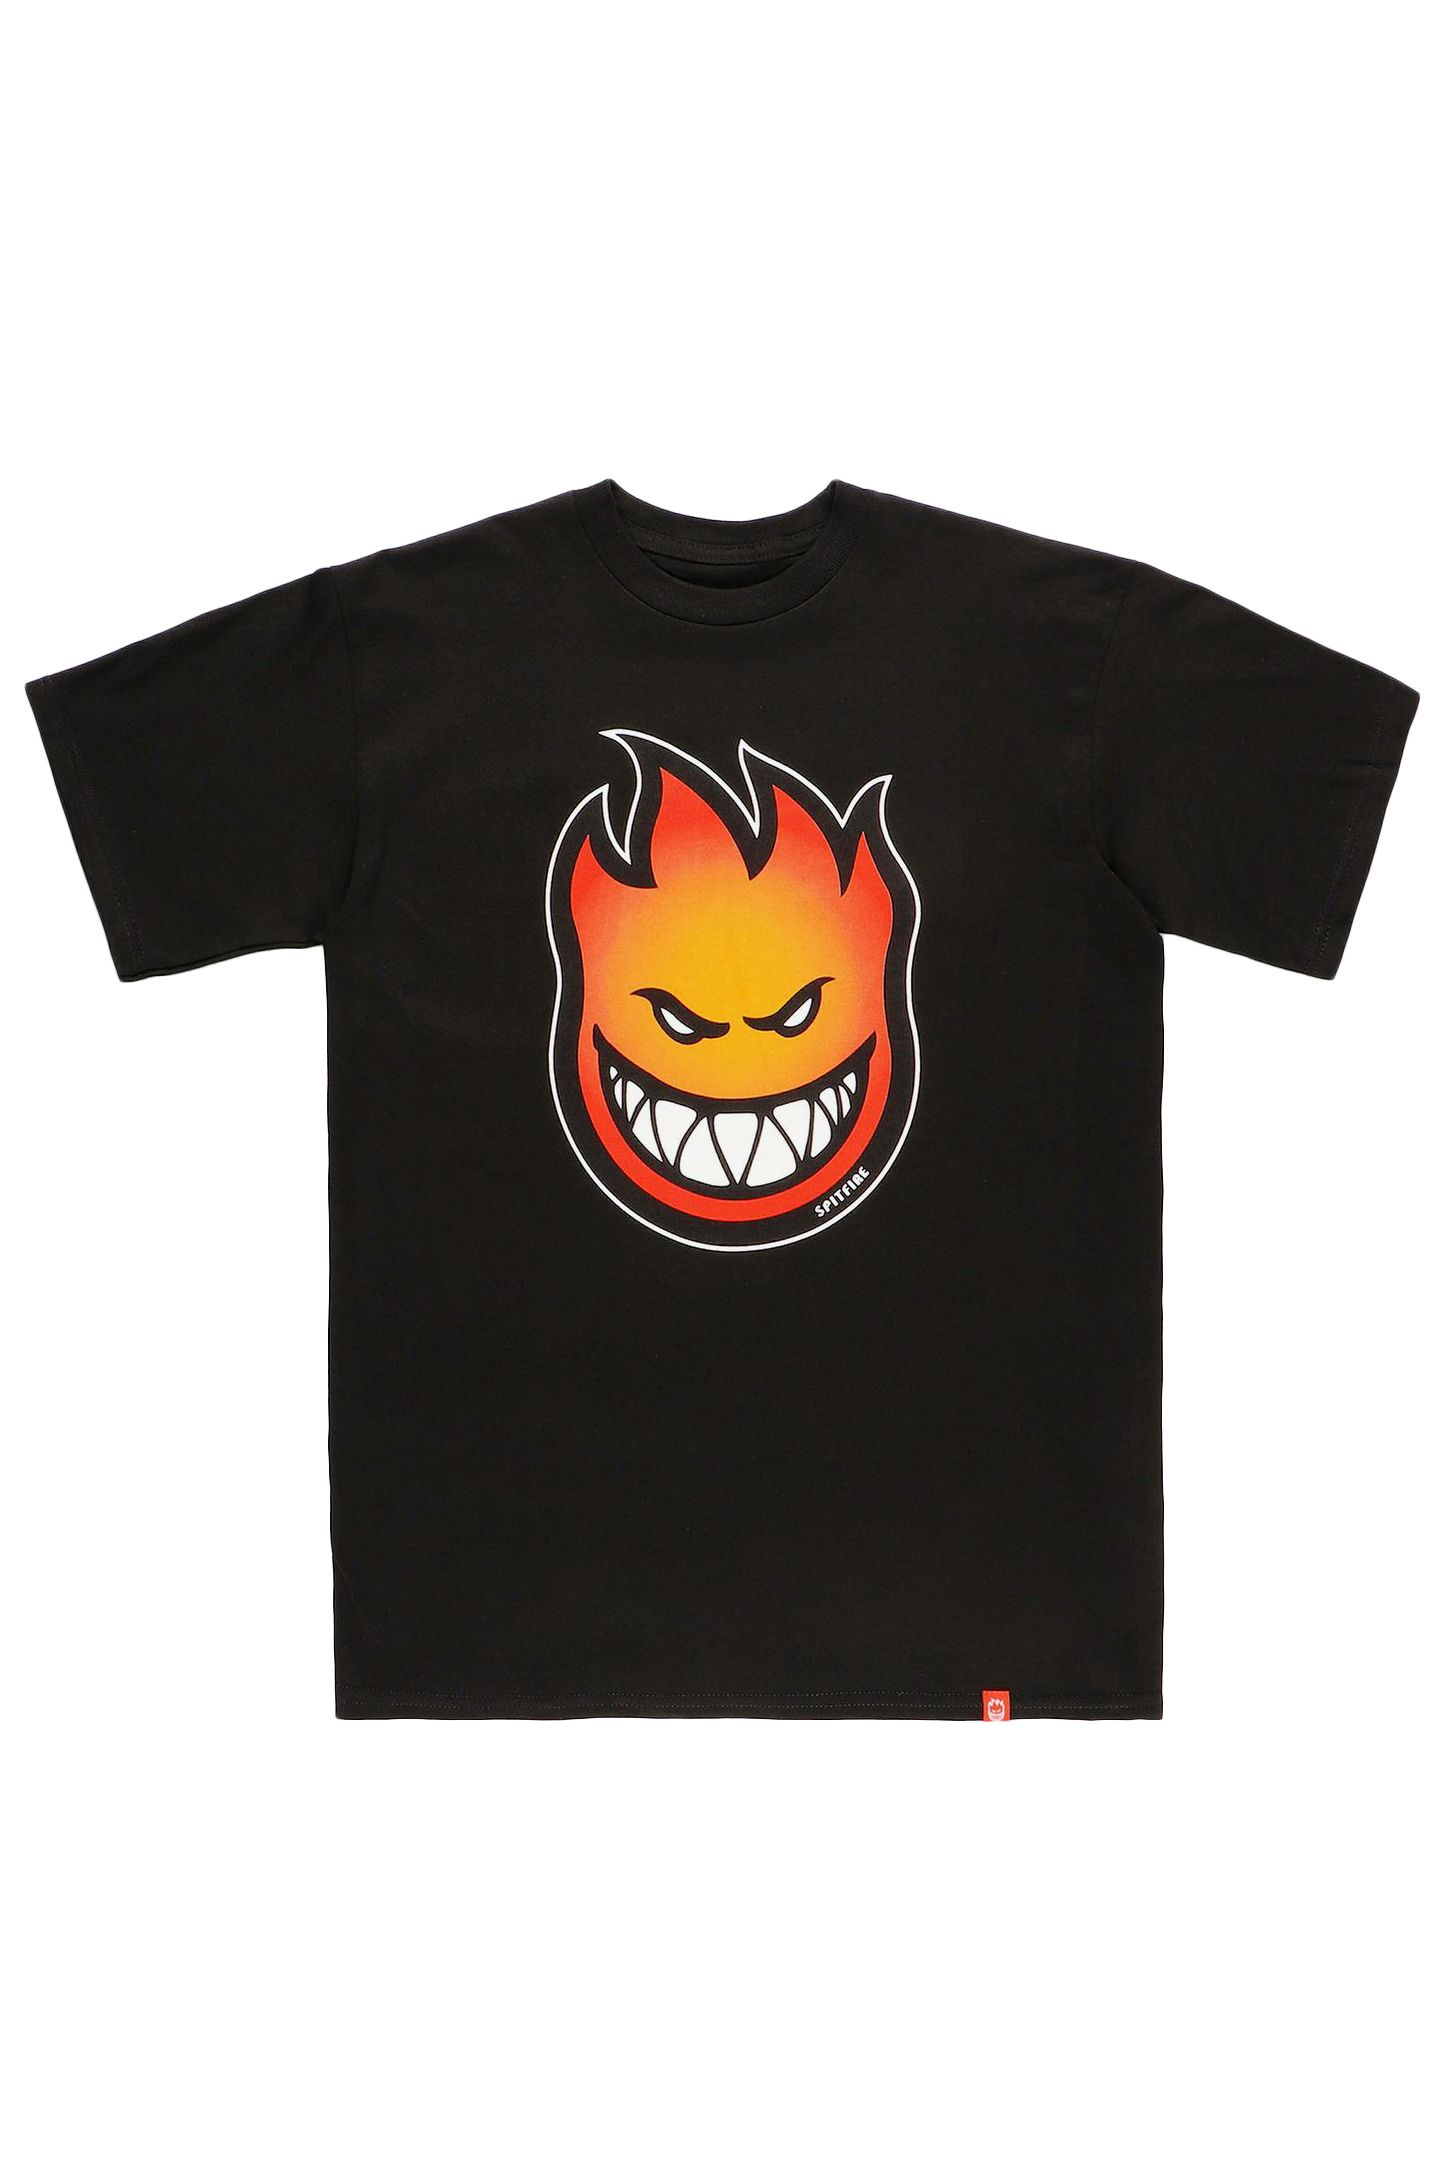 T-Shirt Spitfire BIGHEAD FADE FILL Black W/ Gold To Red Fade Print